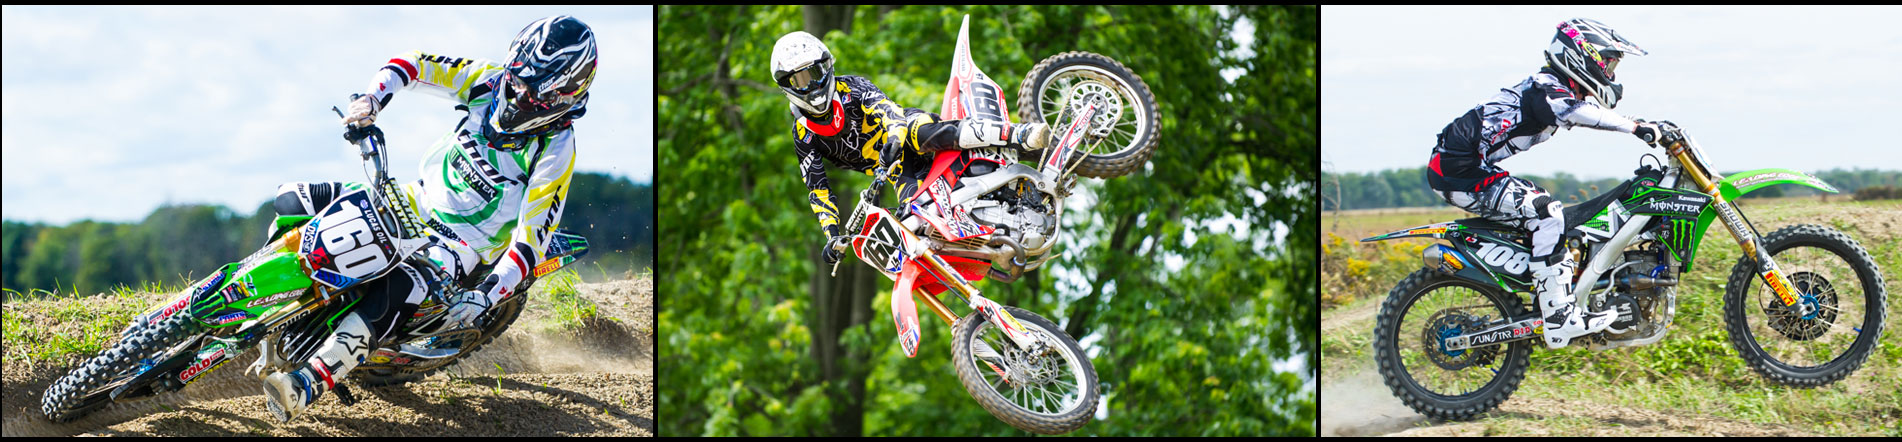 motocross schools, motocross training